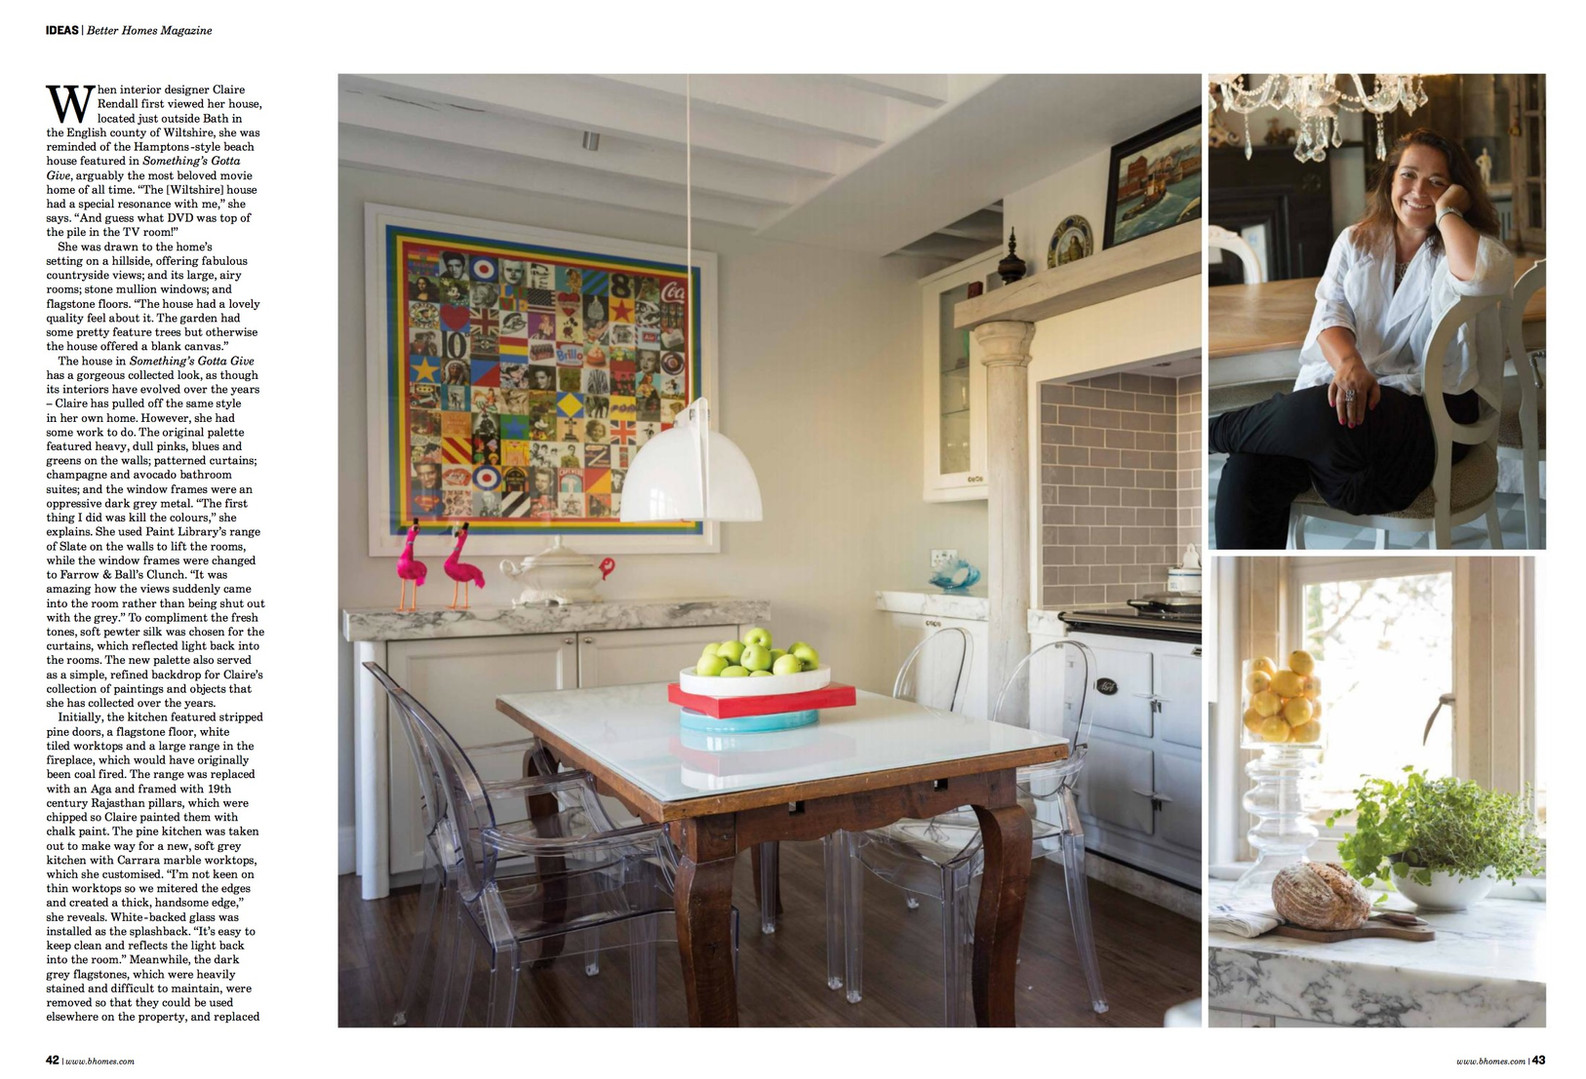 Claire rendall interior design Better Homes 6